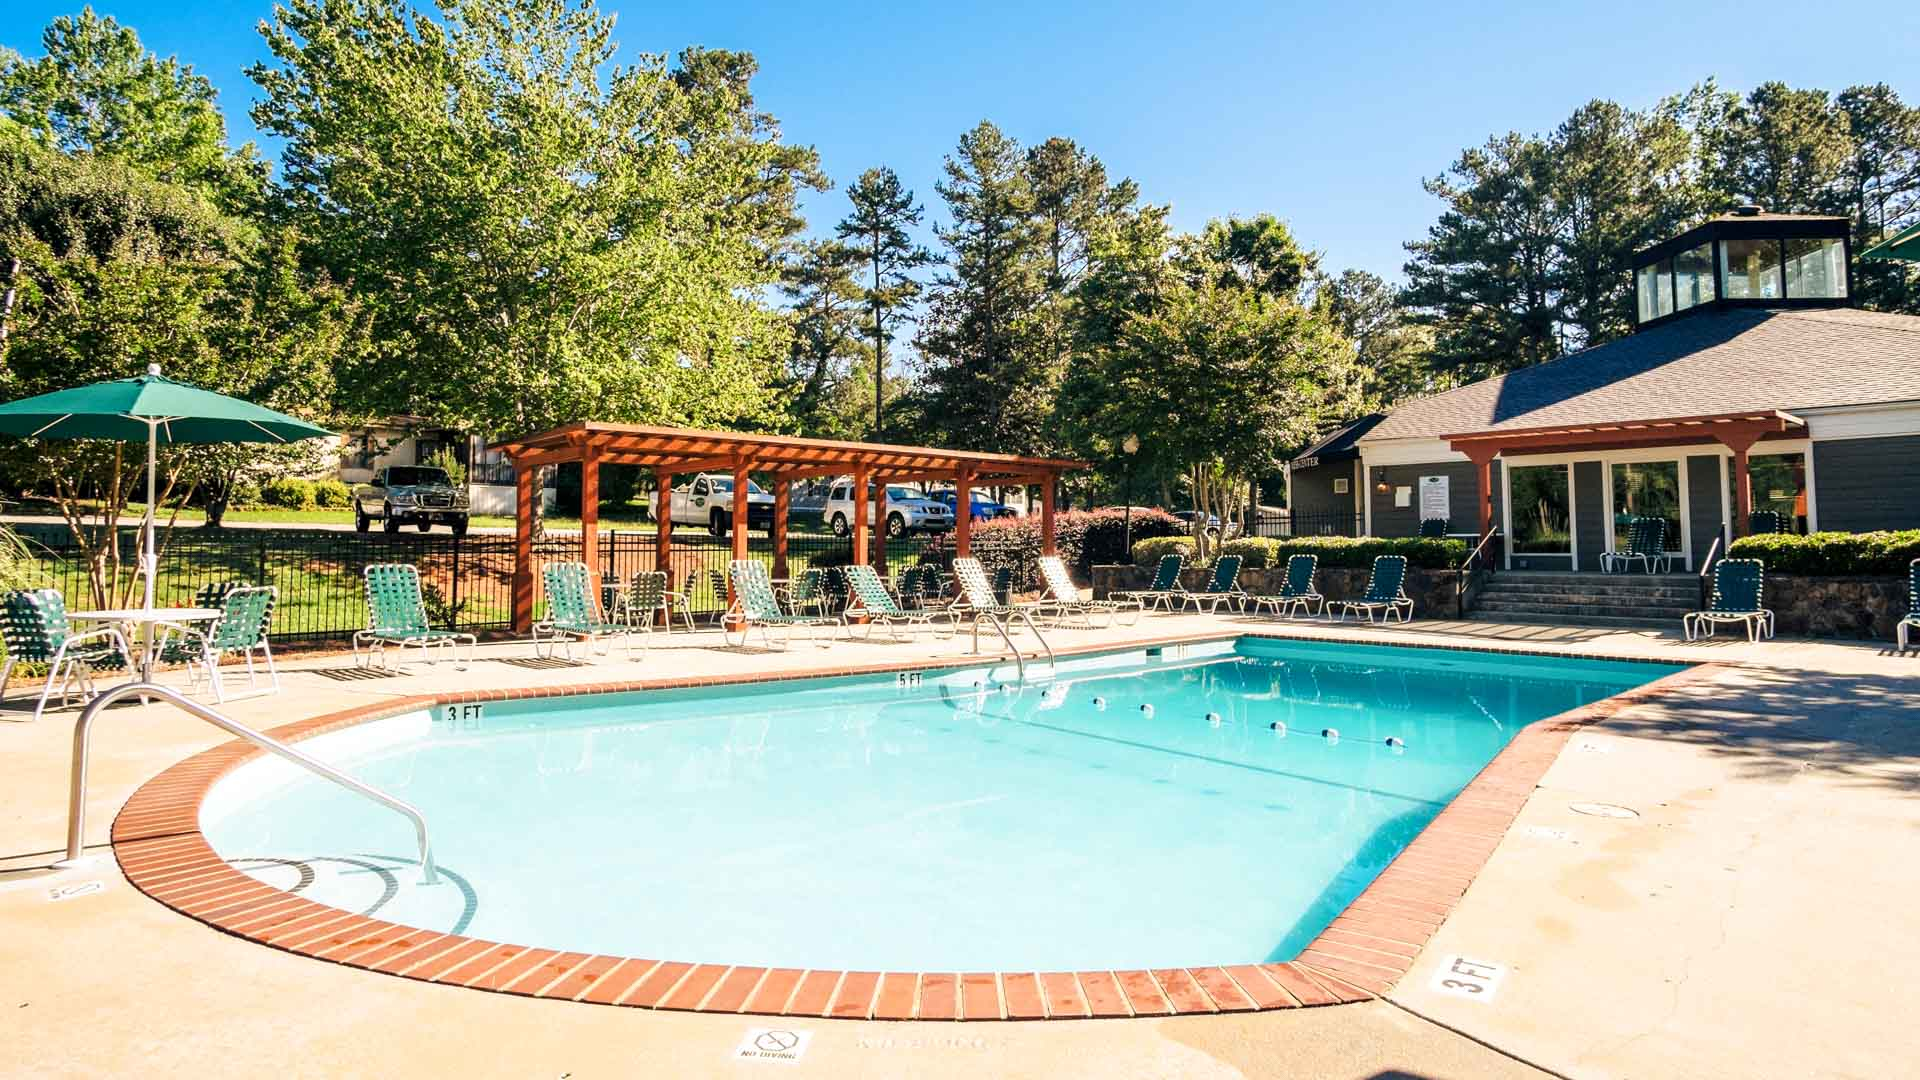 Countryside Village of Gwinnett Manufactured Homes Community Swimming Pool in Buford, GA